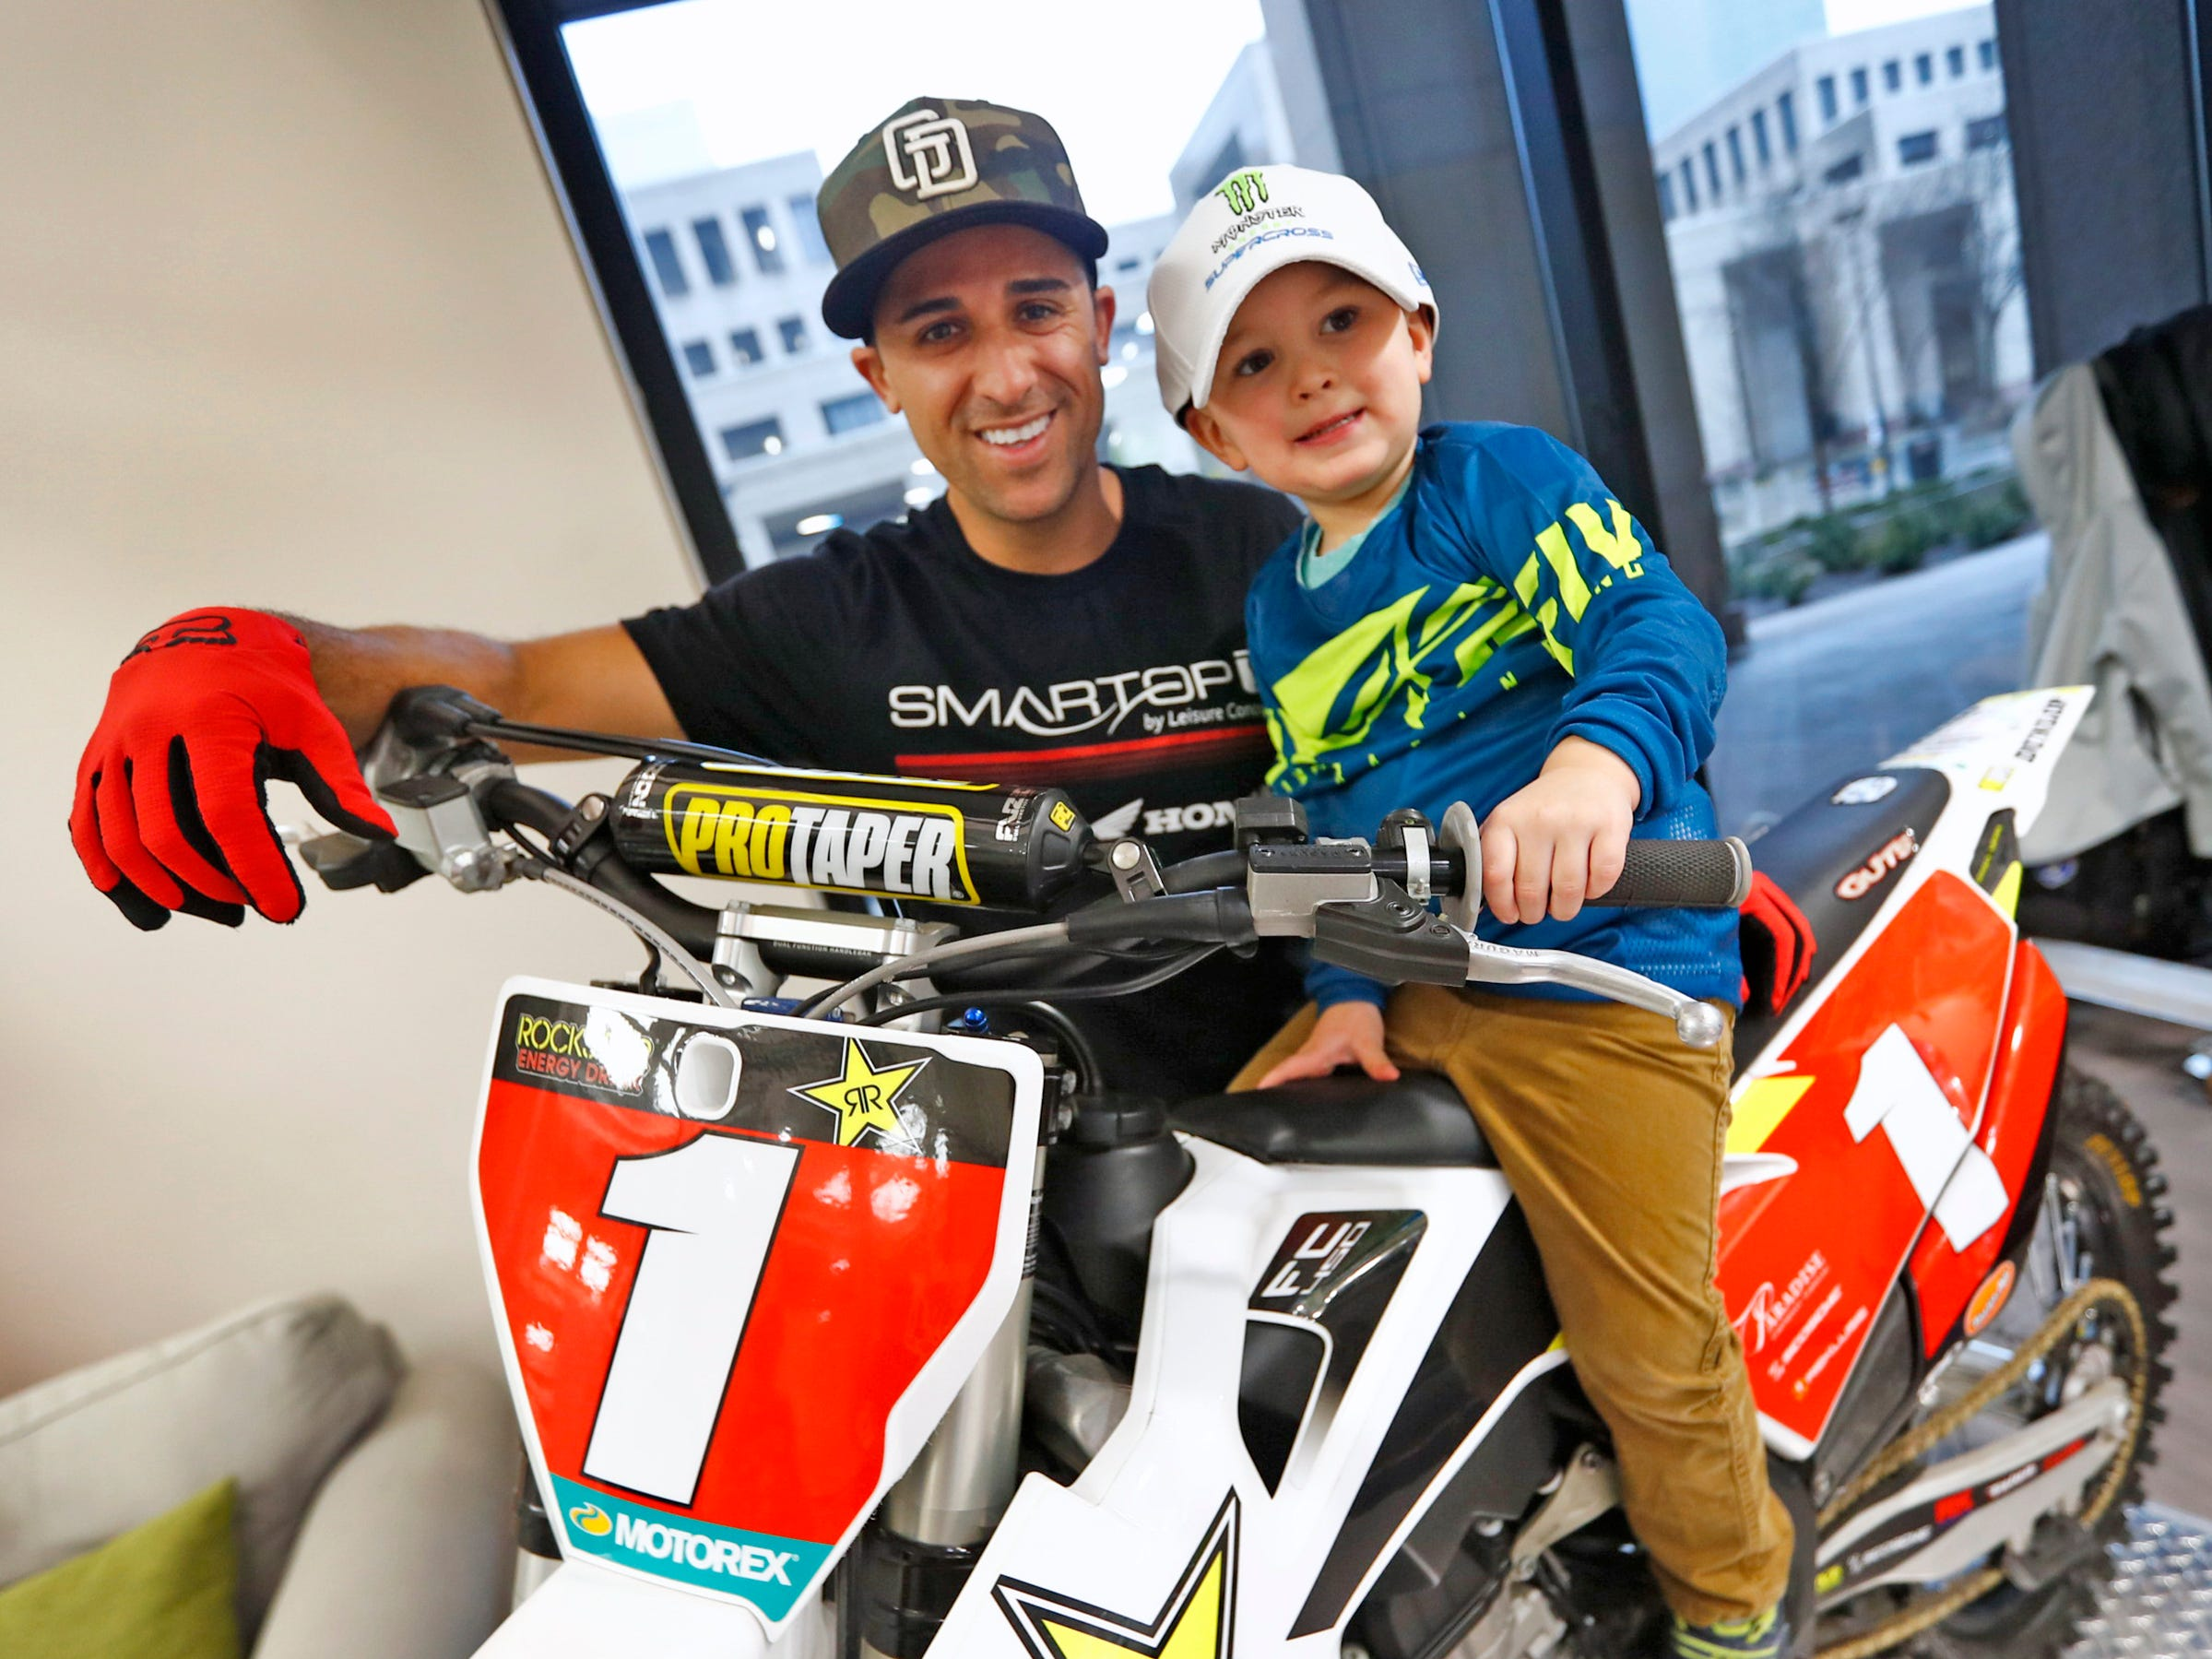 Supercross racer Mike Alessi, left, poses with Jaxson Bare trying out a Superercross simulator, as Alessi visits with kids at Day Early Learning Center, Thursday, March 14, 2019.  Alessi provided Supercross rider jerseys and hats for the kids and gave wagon rides, on a break before the upcoming Supercross race.